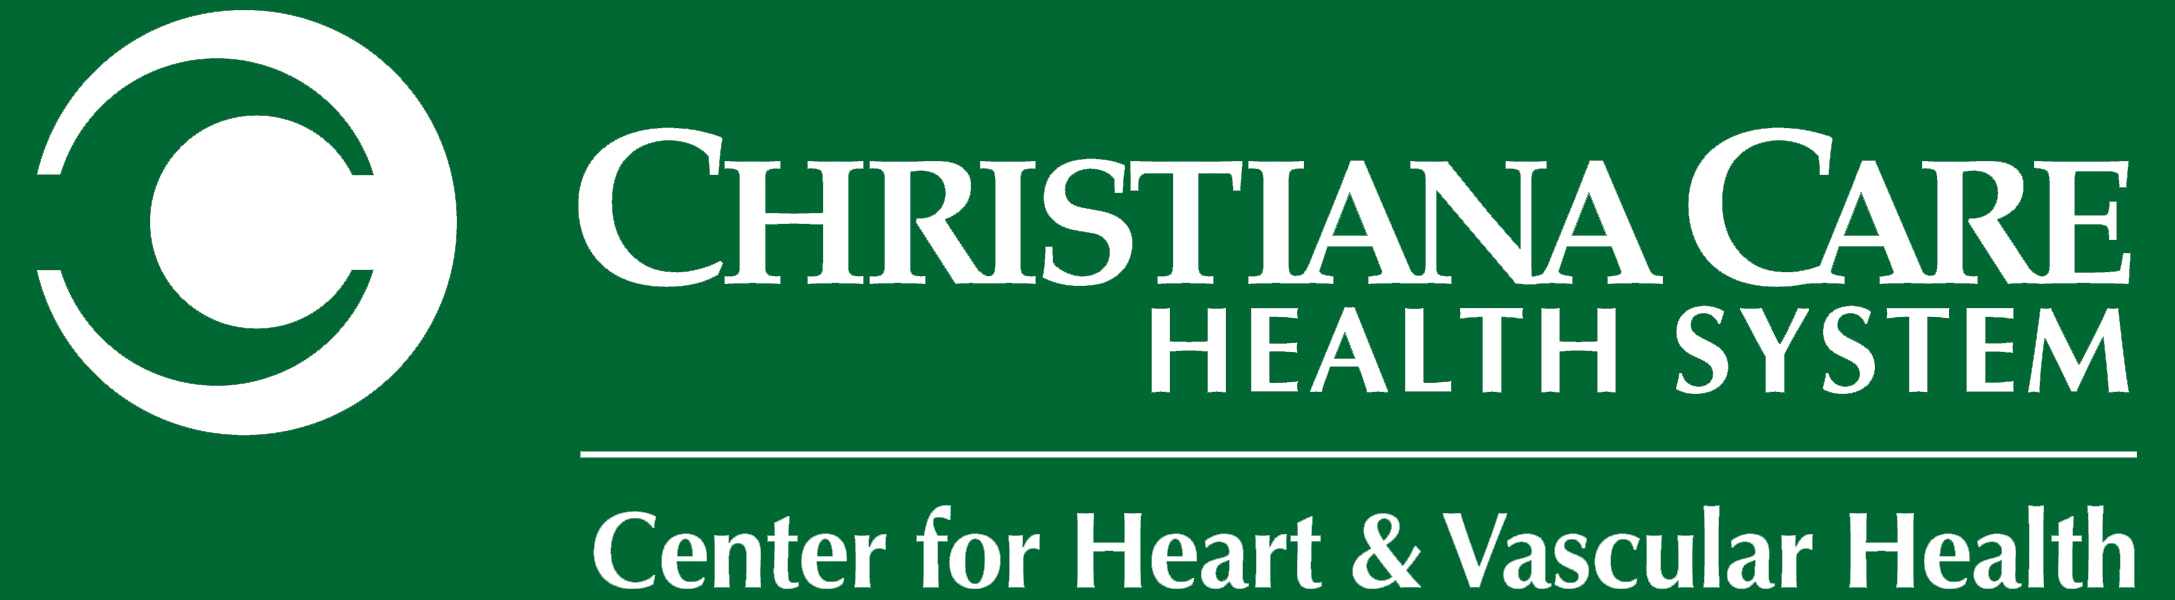 Christiana Care Health System – Center for Heart